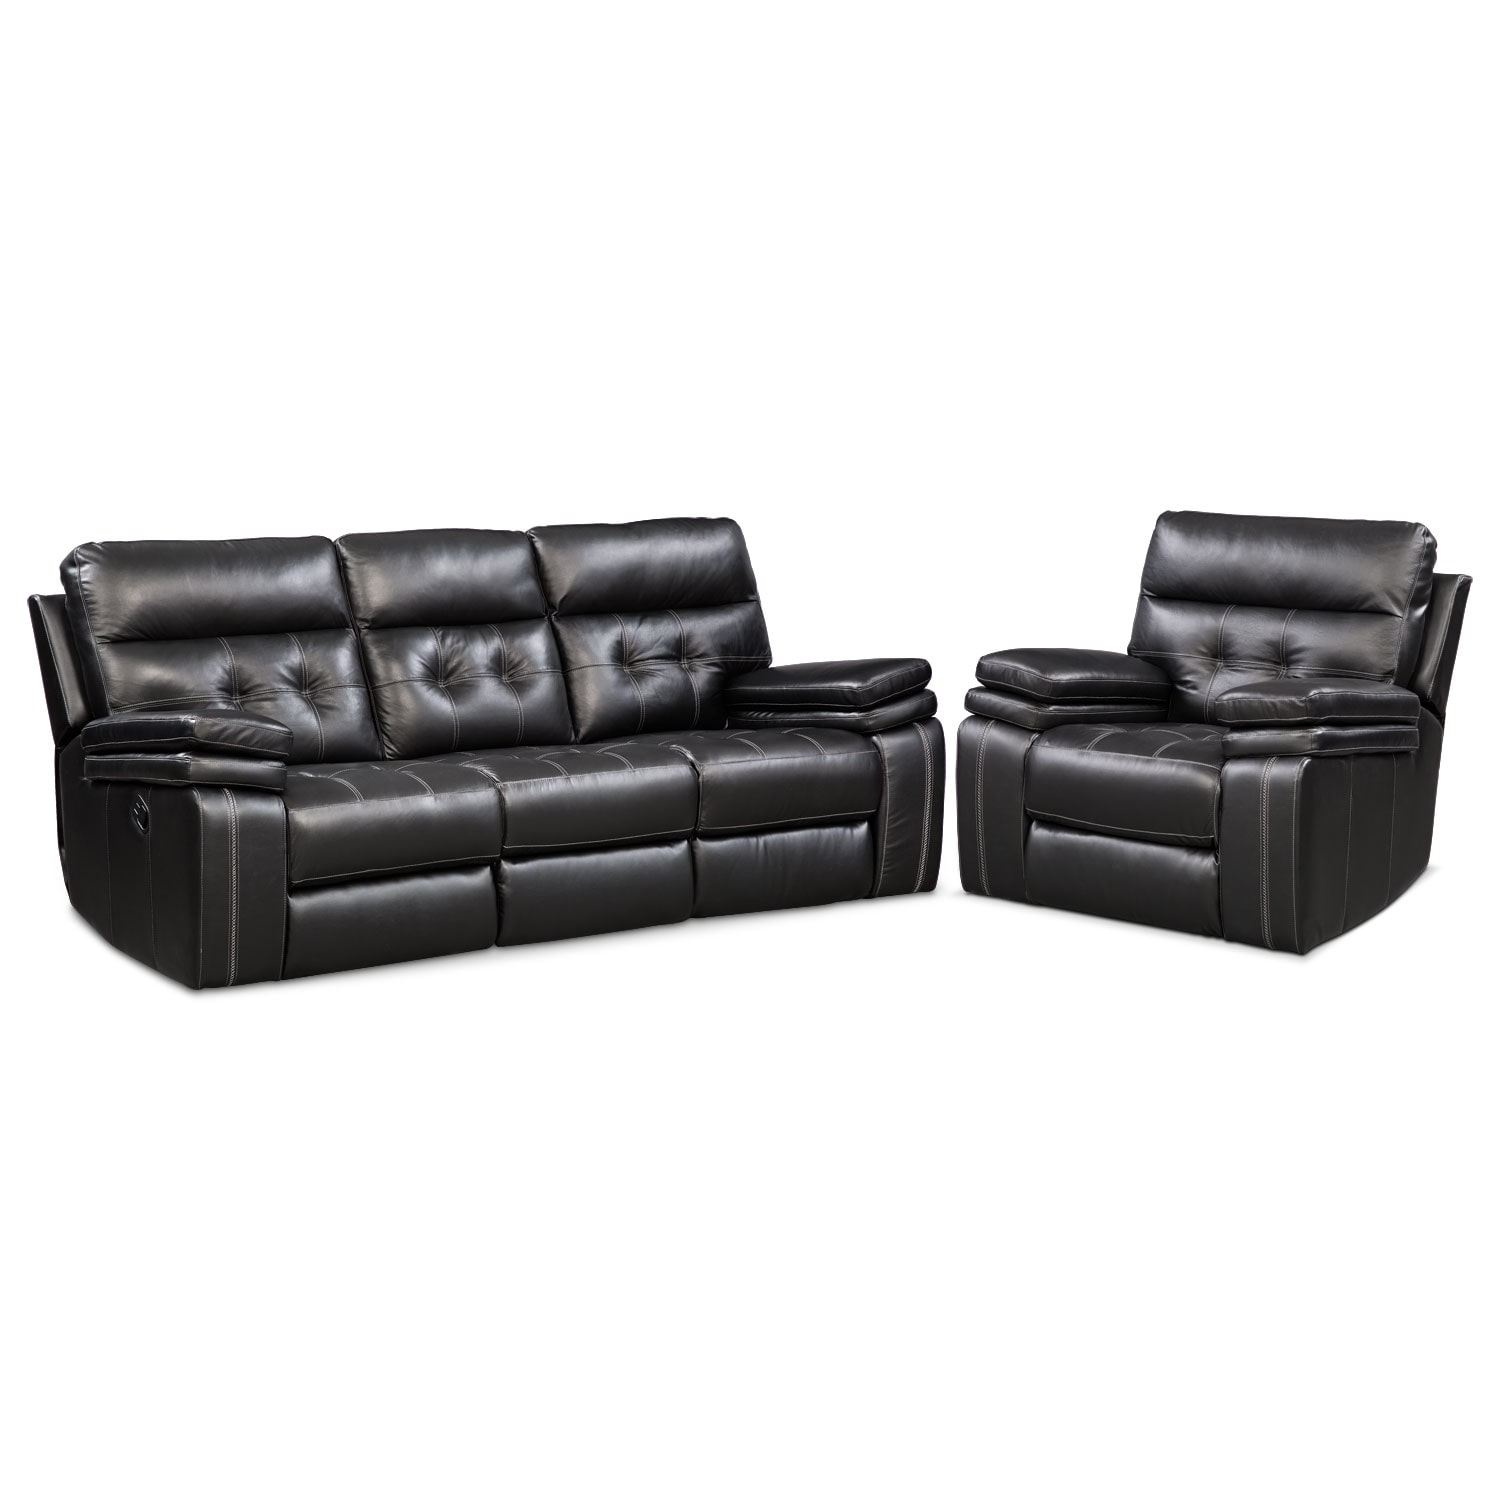 Living Room Furniture - Brisco  Manual Reclining Sofa and Recliner Set - Black